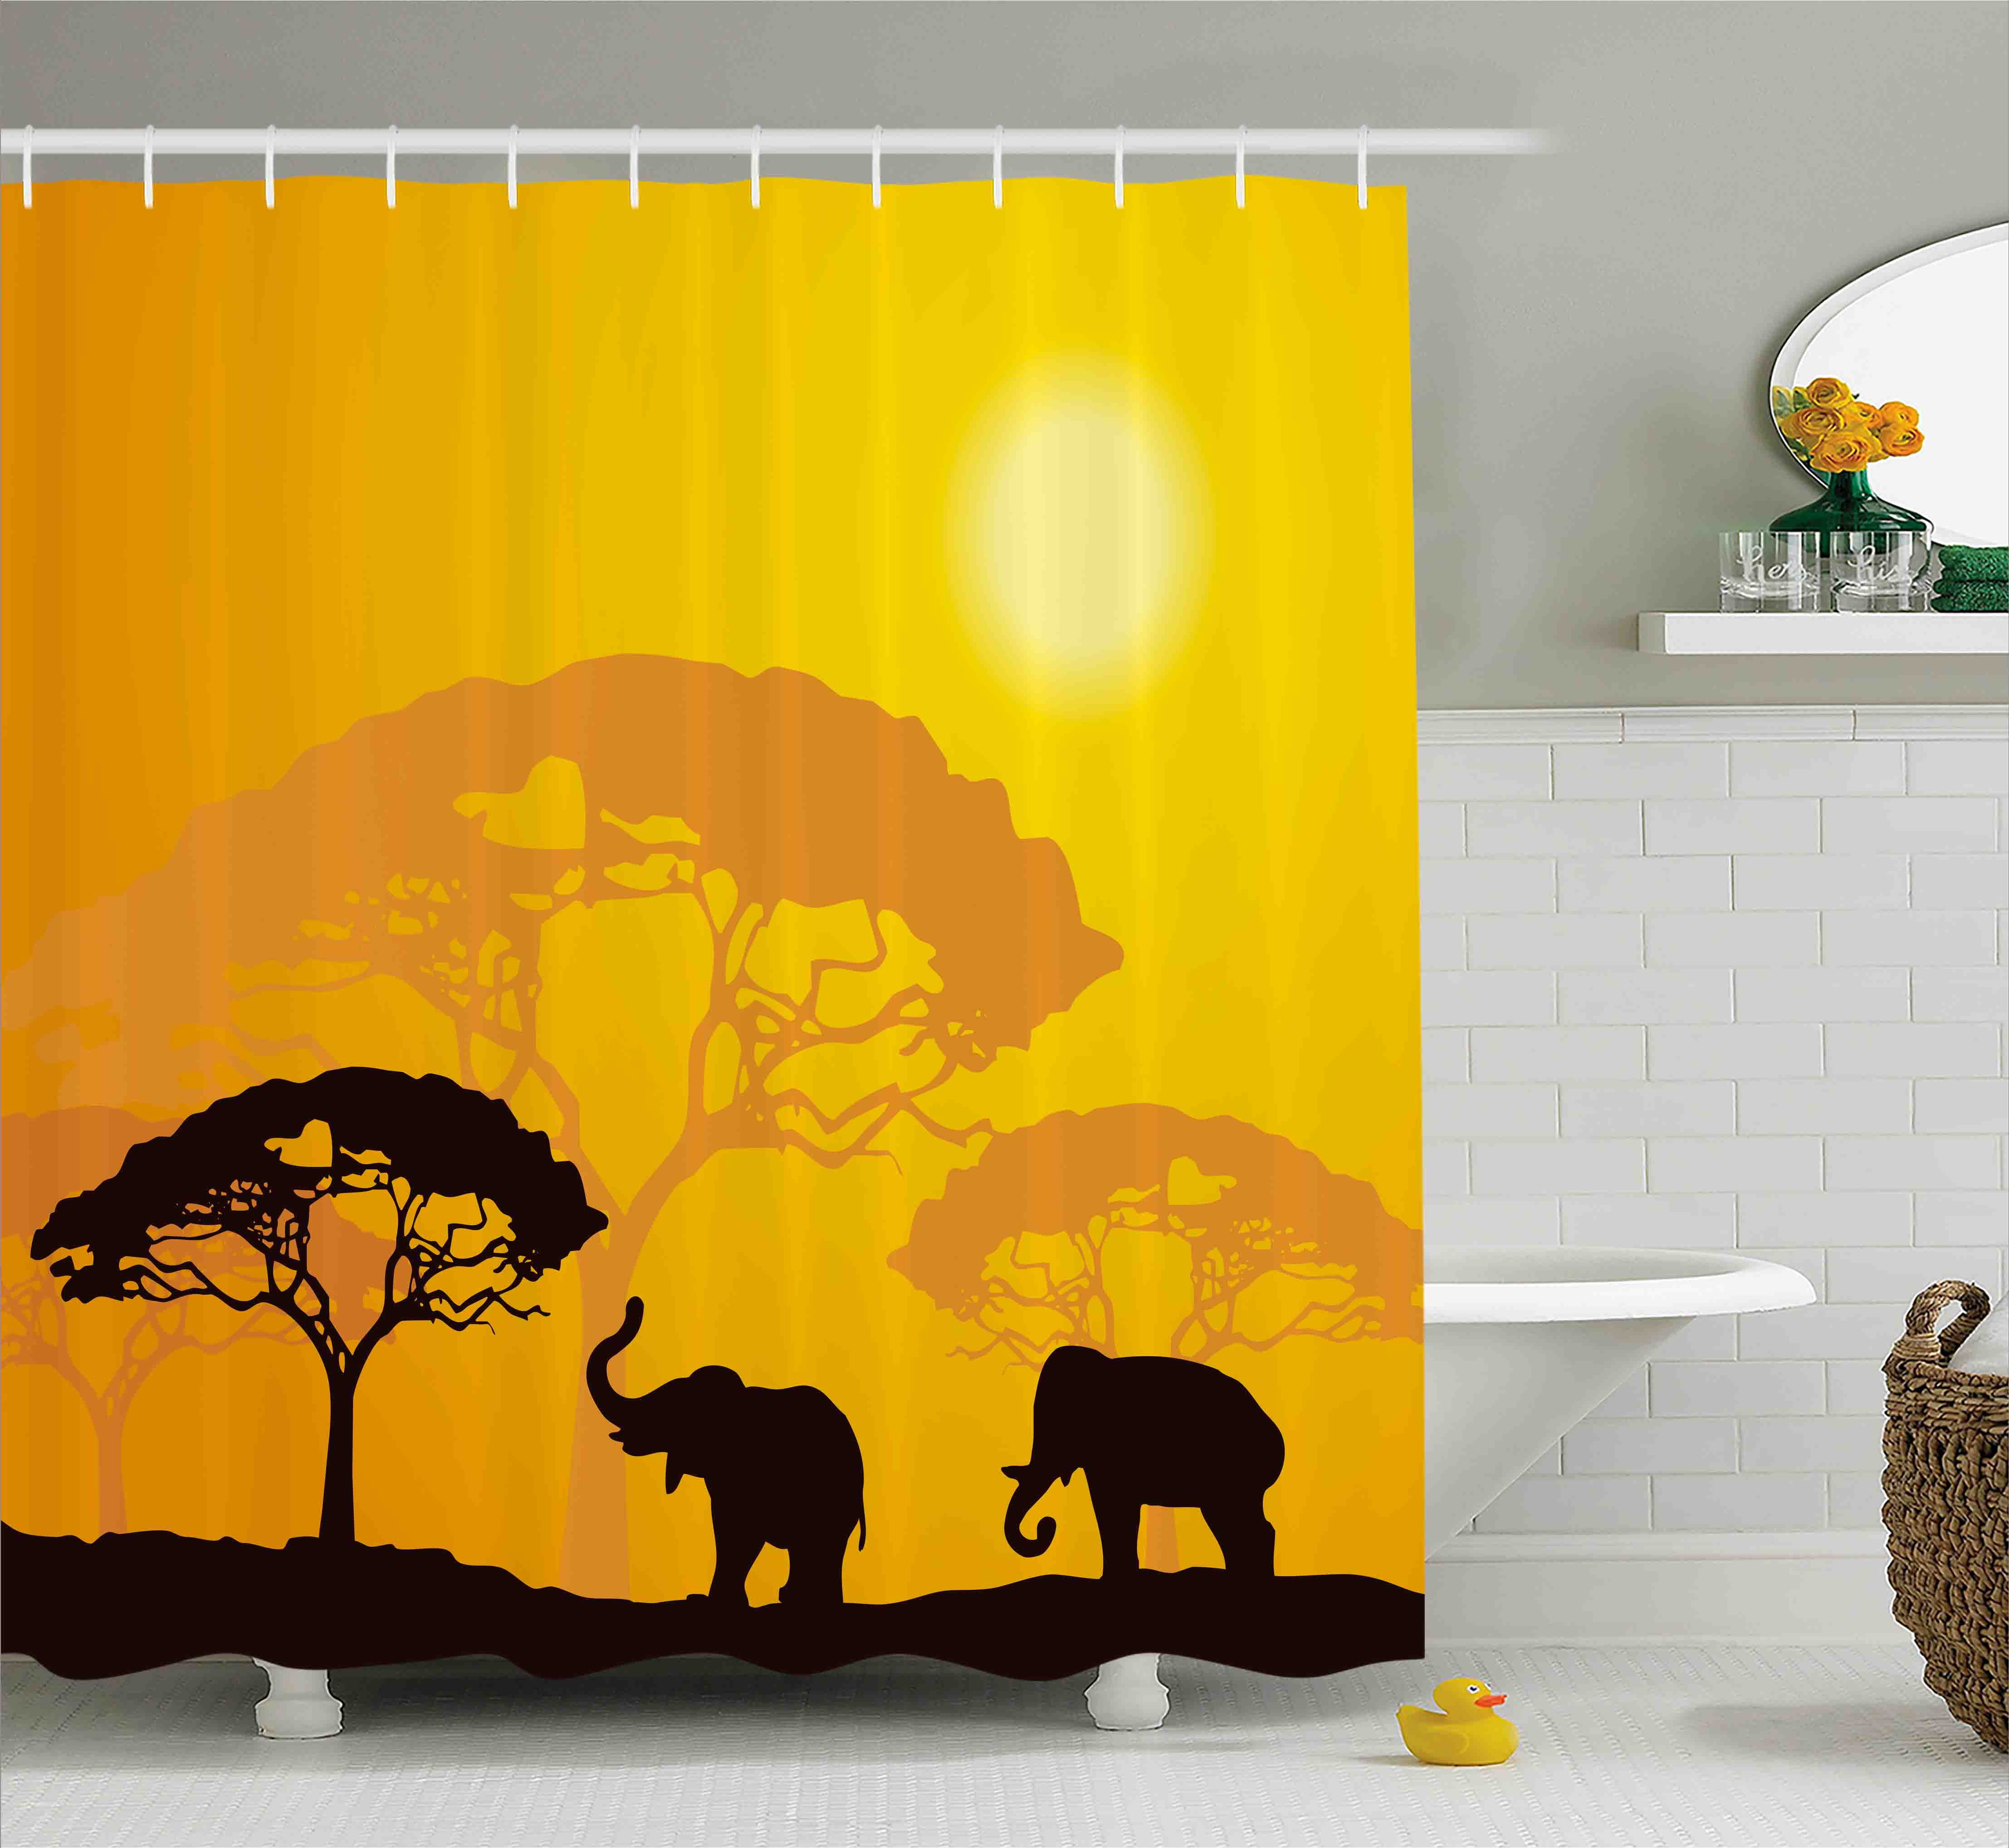 Safari Shower Curtain, African Wildlife Animals Elephants Sun Beams Trees Print Art, Fabric Bathroom Set with Hooks, Earth Yellow Marigold Dark Brown, by Ambesonne